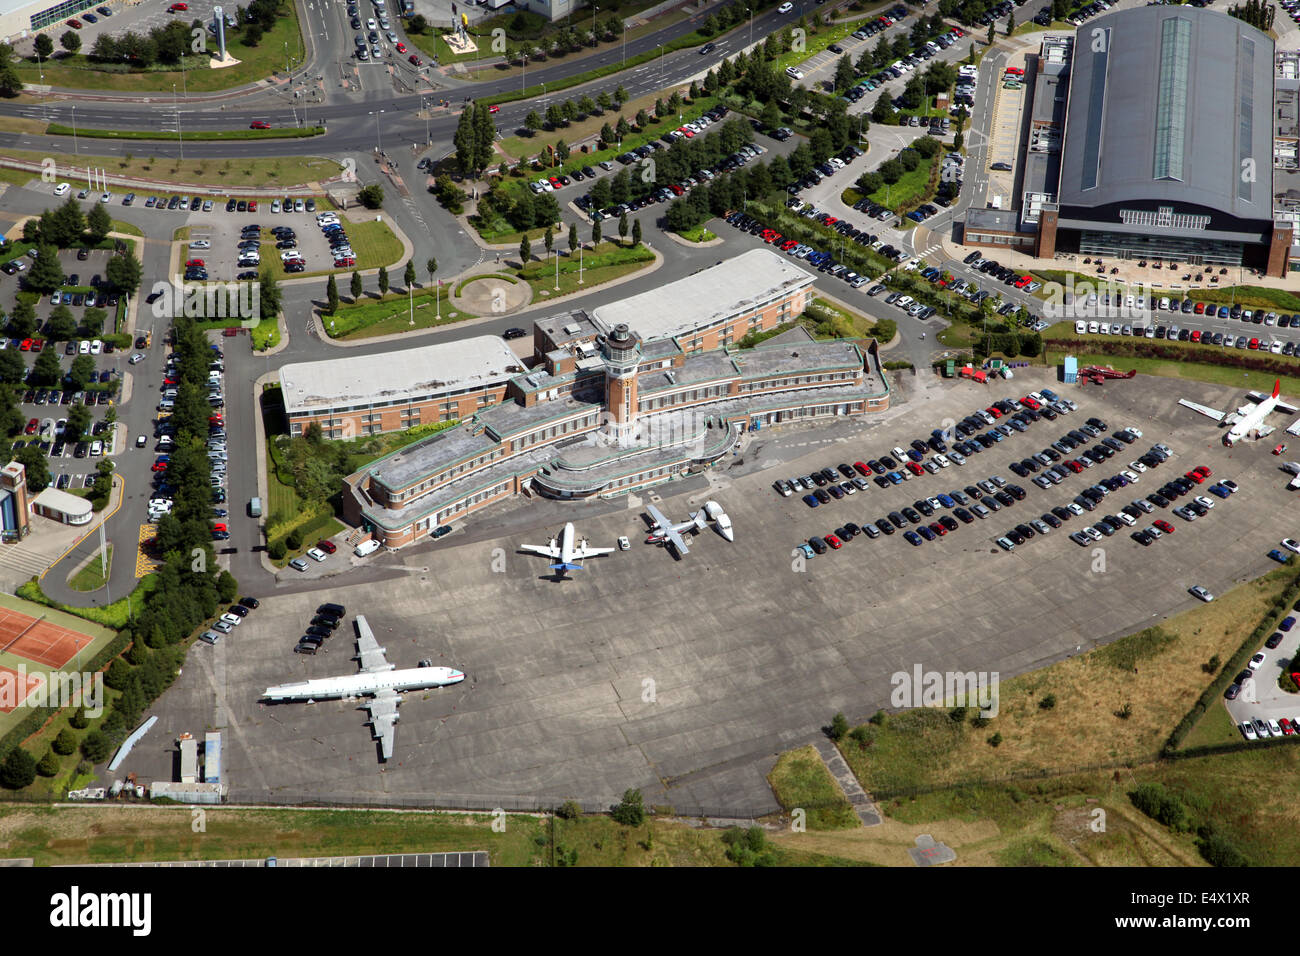 Aerial view of the former Speke Airport in Liverpool, UK. Now a Crown Plaza Hotel. - Stock Image